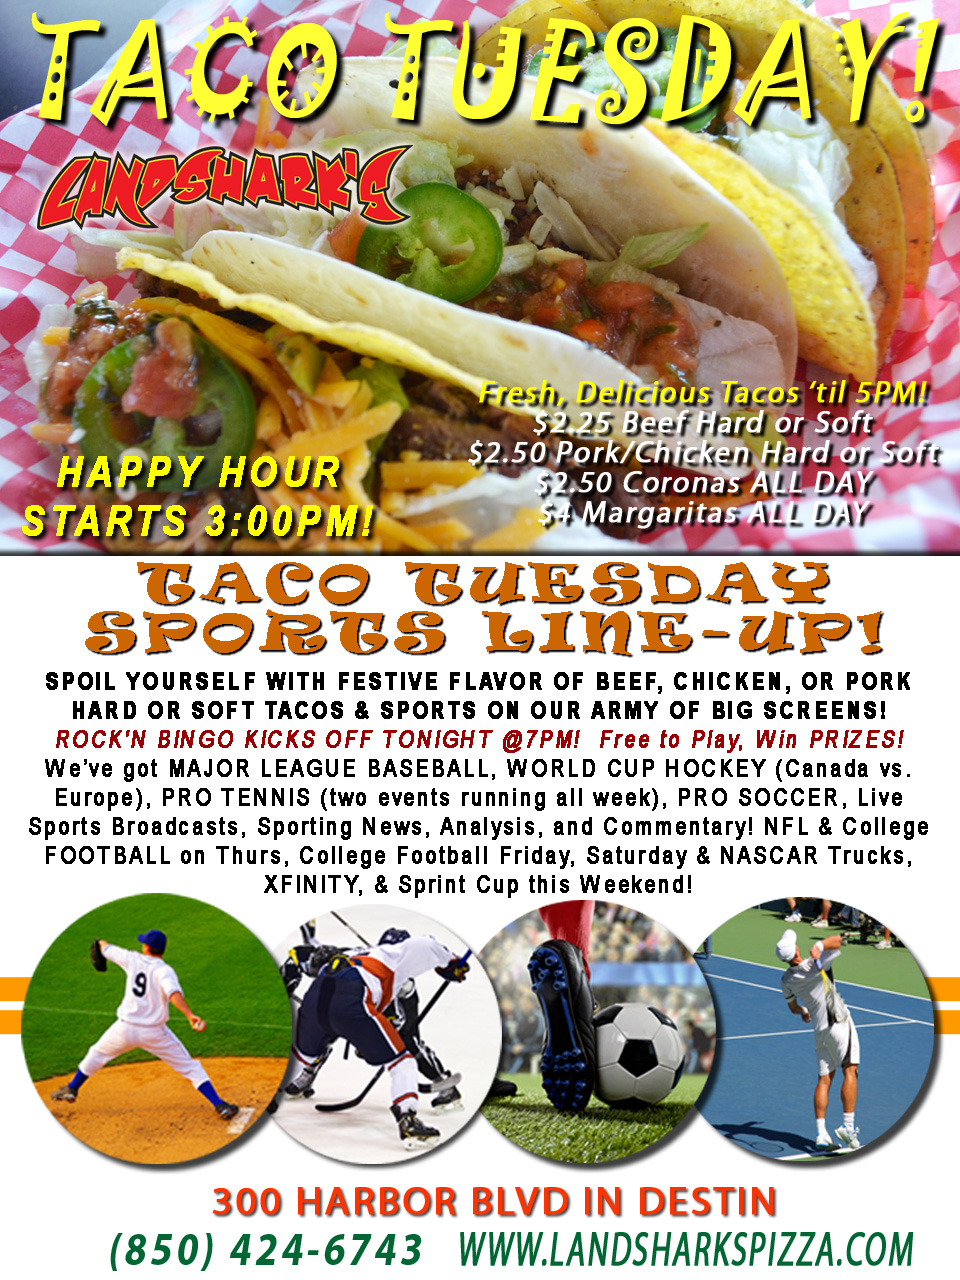 destin-fl-taco-tuesday-landsharks-coronas-margarita-specials-09-27-16